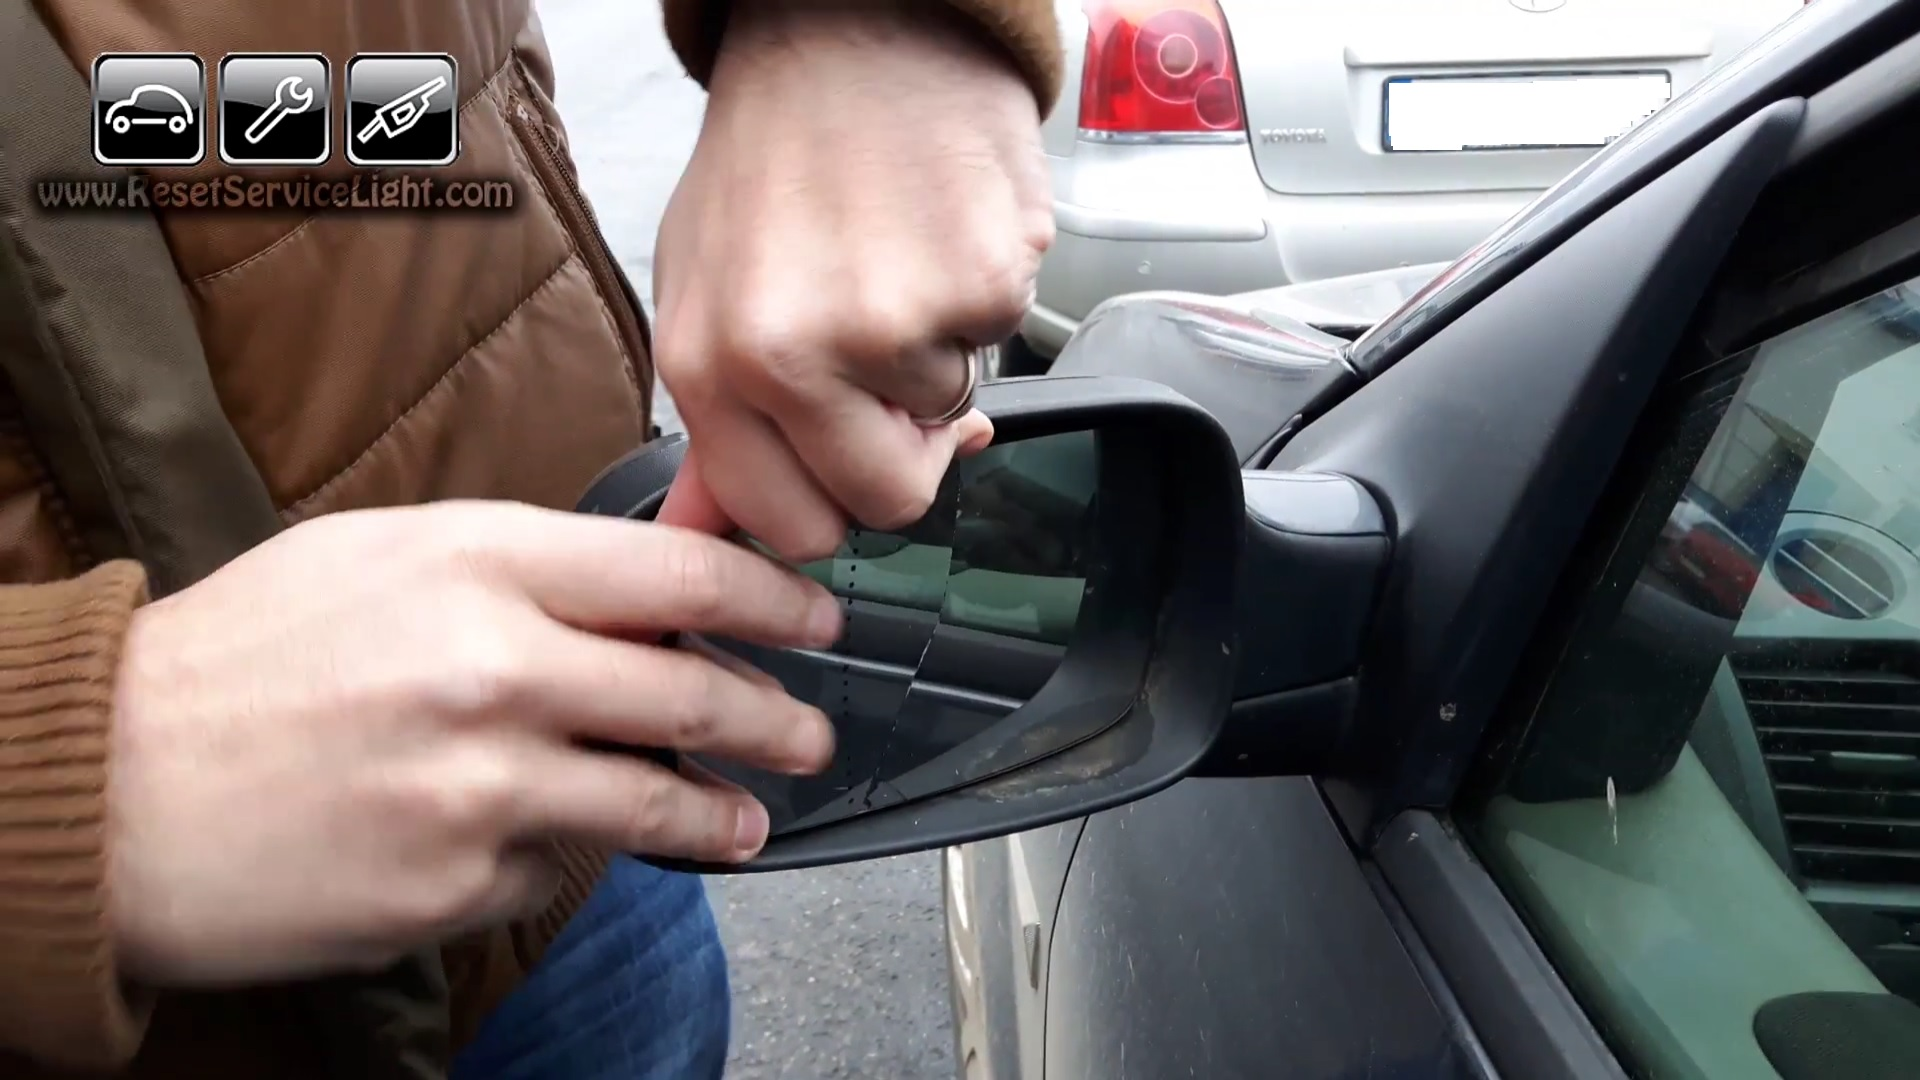 How to replace the glass of the side mirror on Renault